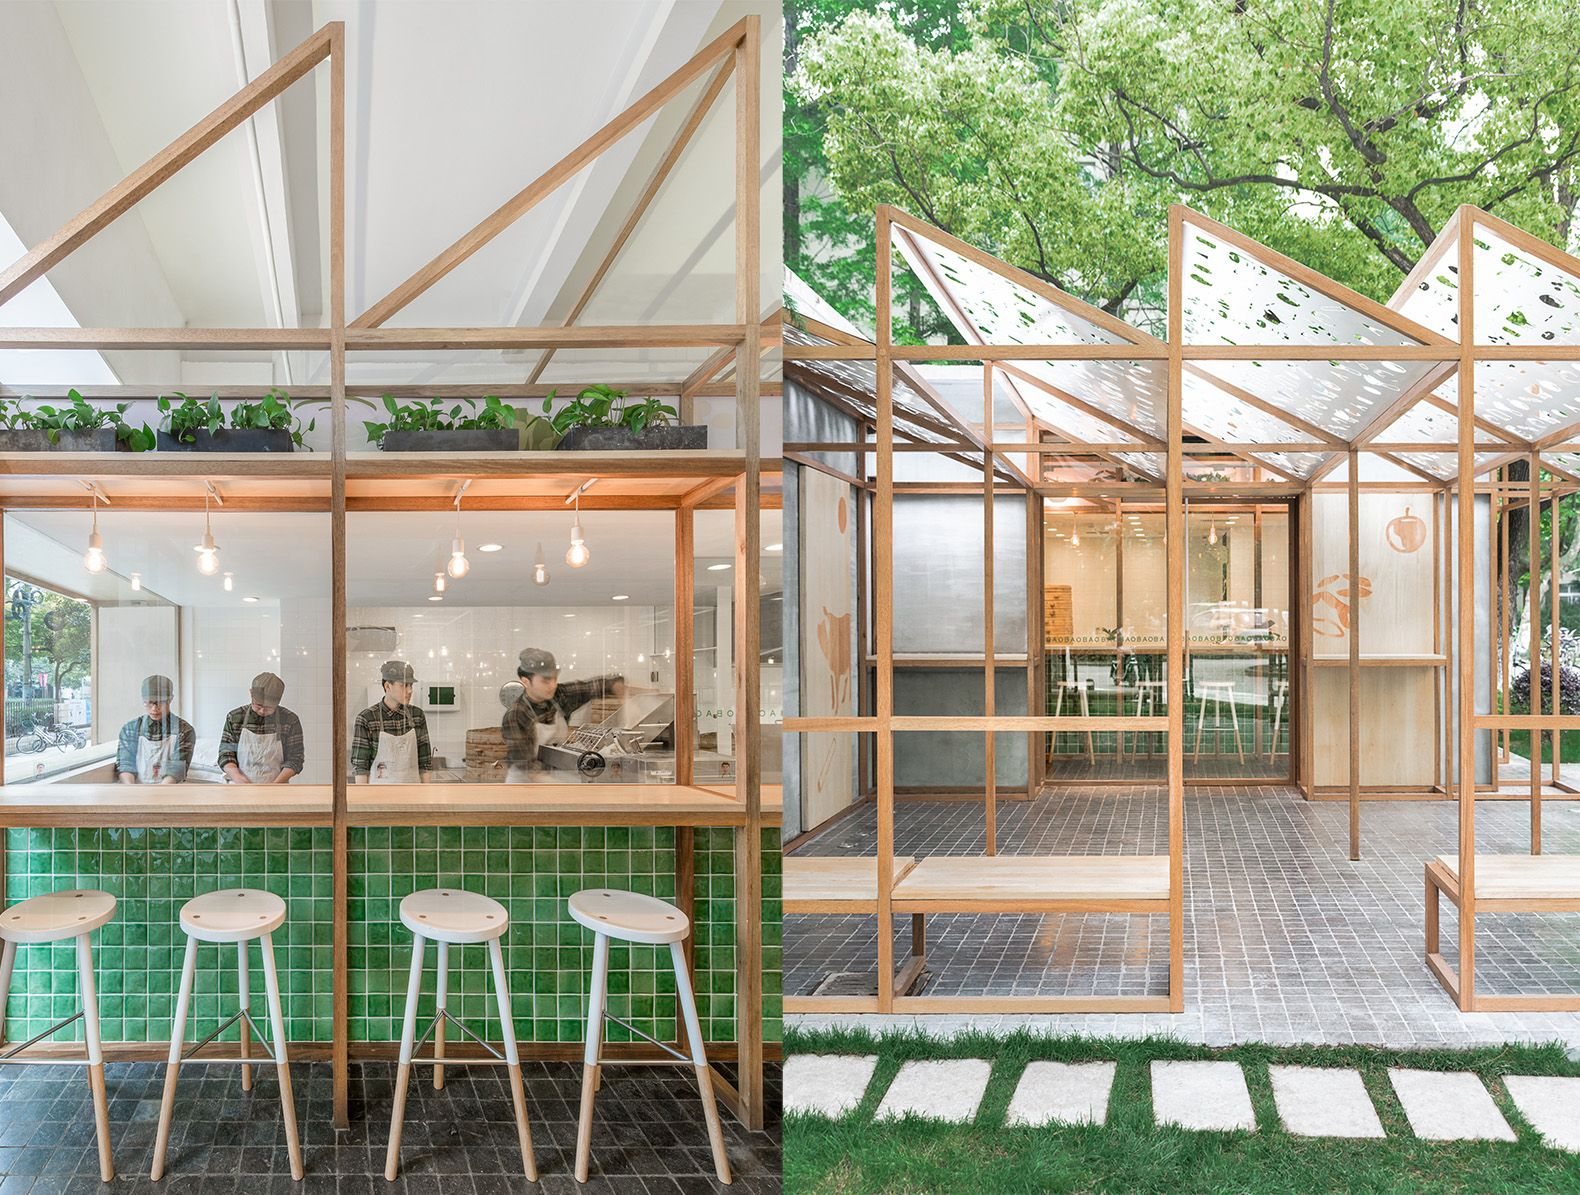 Stylish Shanghai Eatery Promotes The Goodness Of Their Food With A Greenhouse Like Design Restaurant Architecture Restaurant Design Restaurant Interior Design